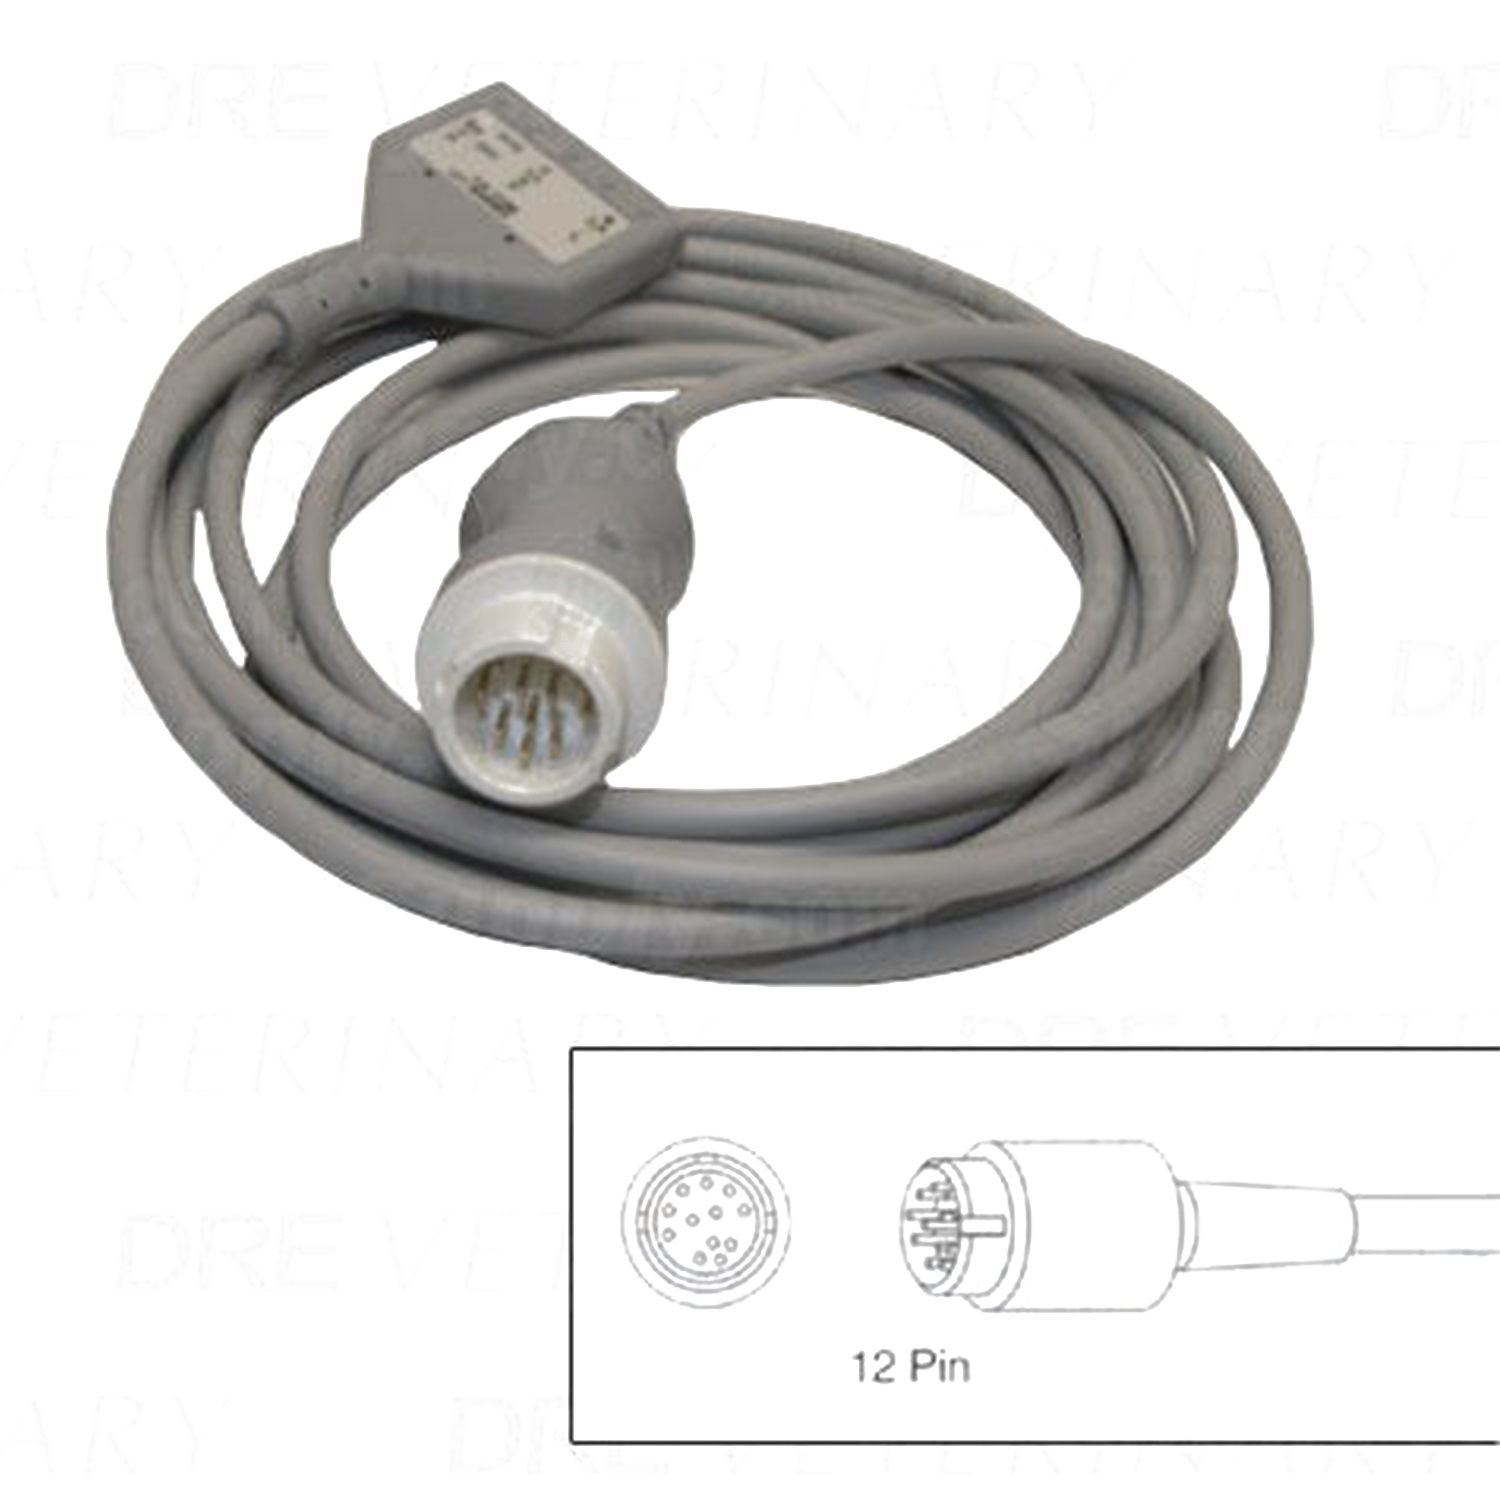 3-Lead Patient Cable for Hewlett Packard Codemasters and Merlin Monitors w/12 Pin Connectors